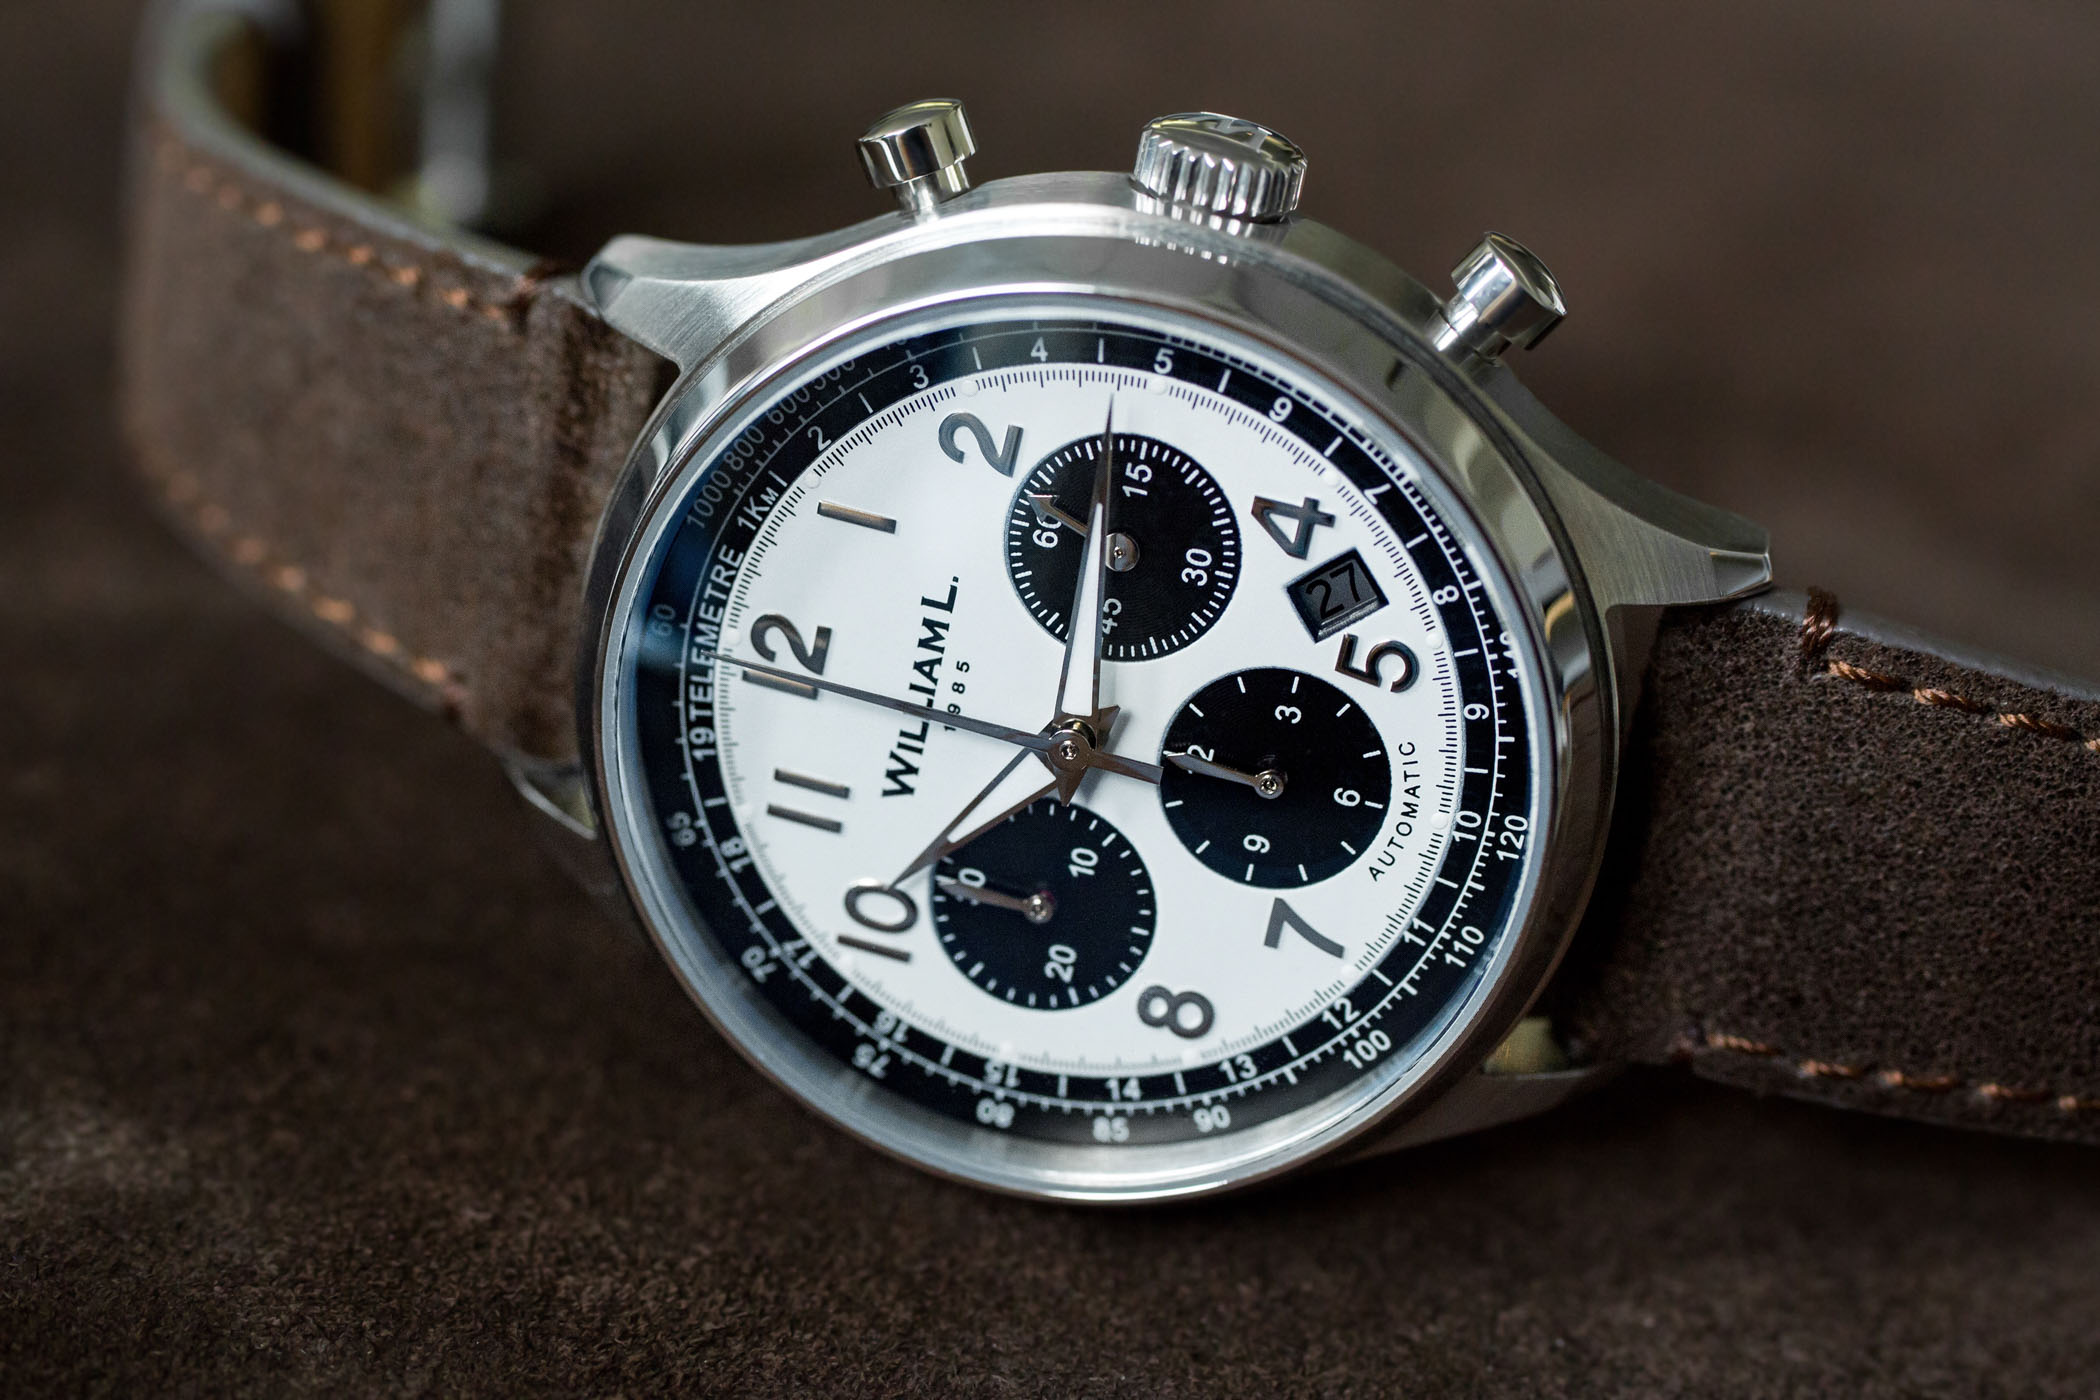 William L. 1985 Automatic Chronograph - Kickstarter